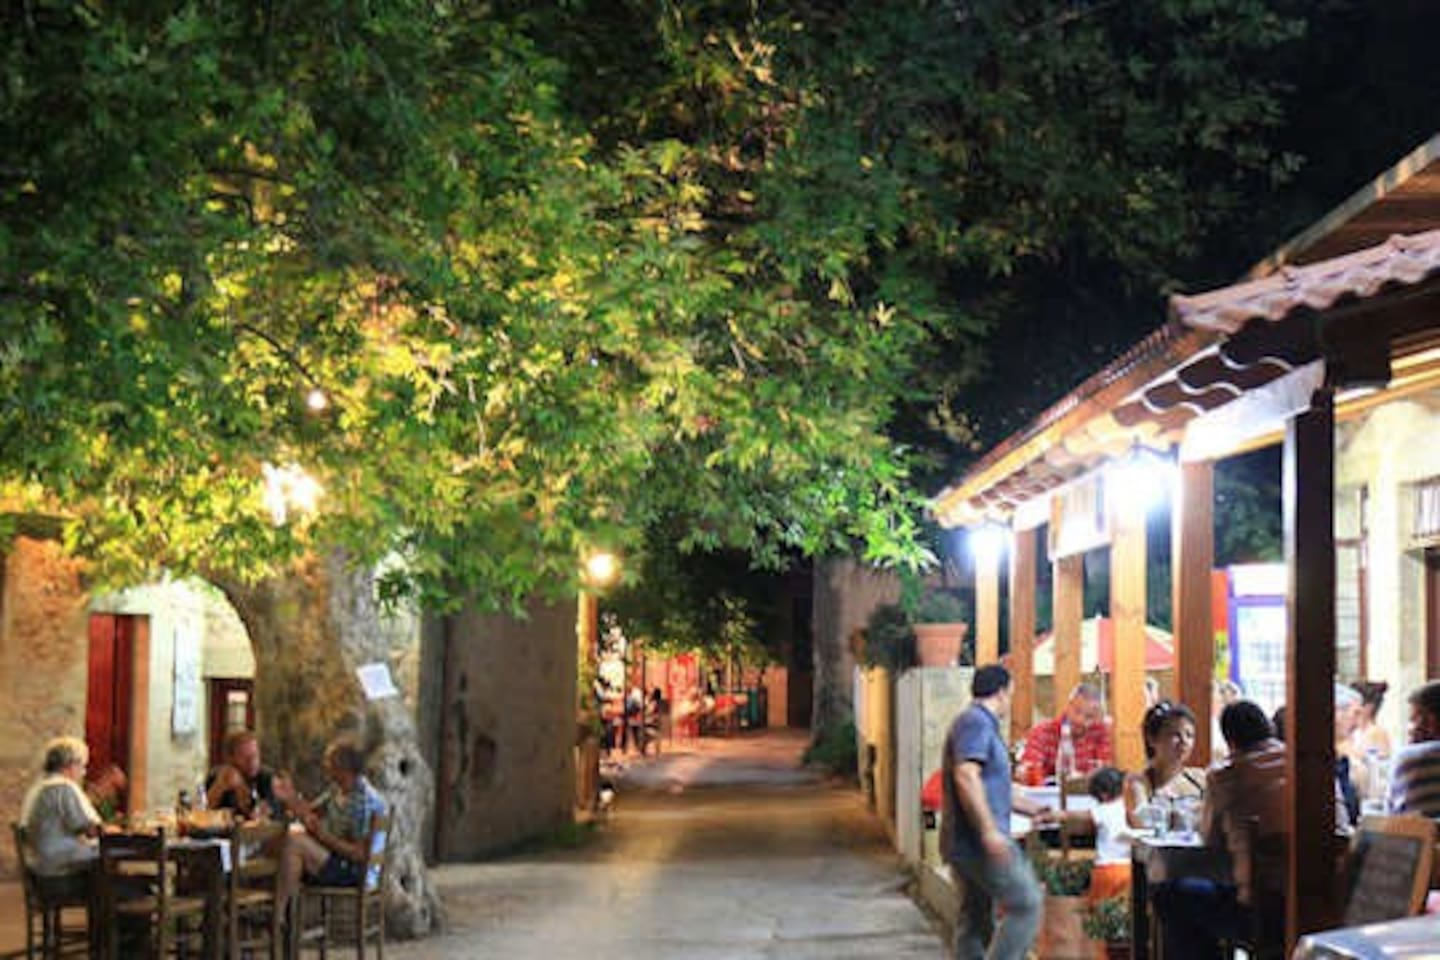 Enjoy a lovely meal in a romantic atmosphere. The traditional restaurants of the village is just 50 meters away!